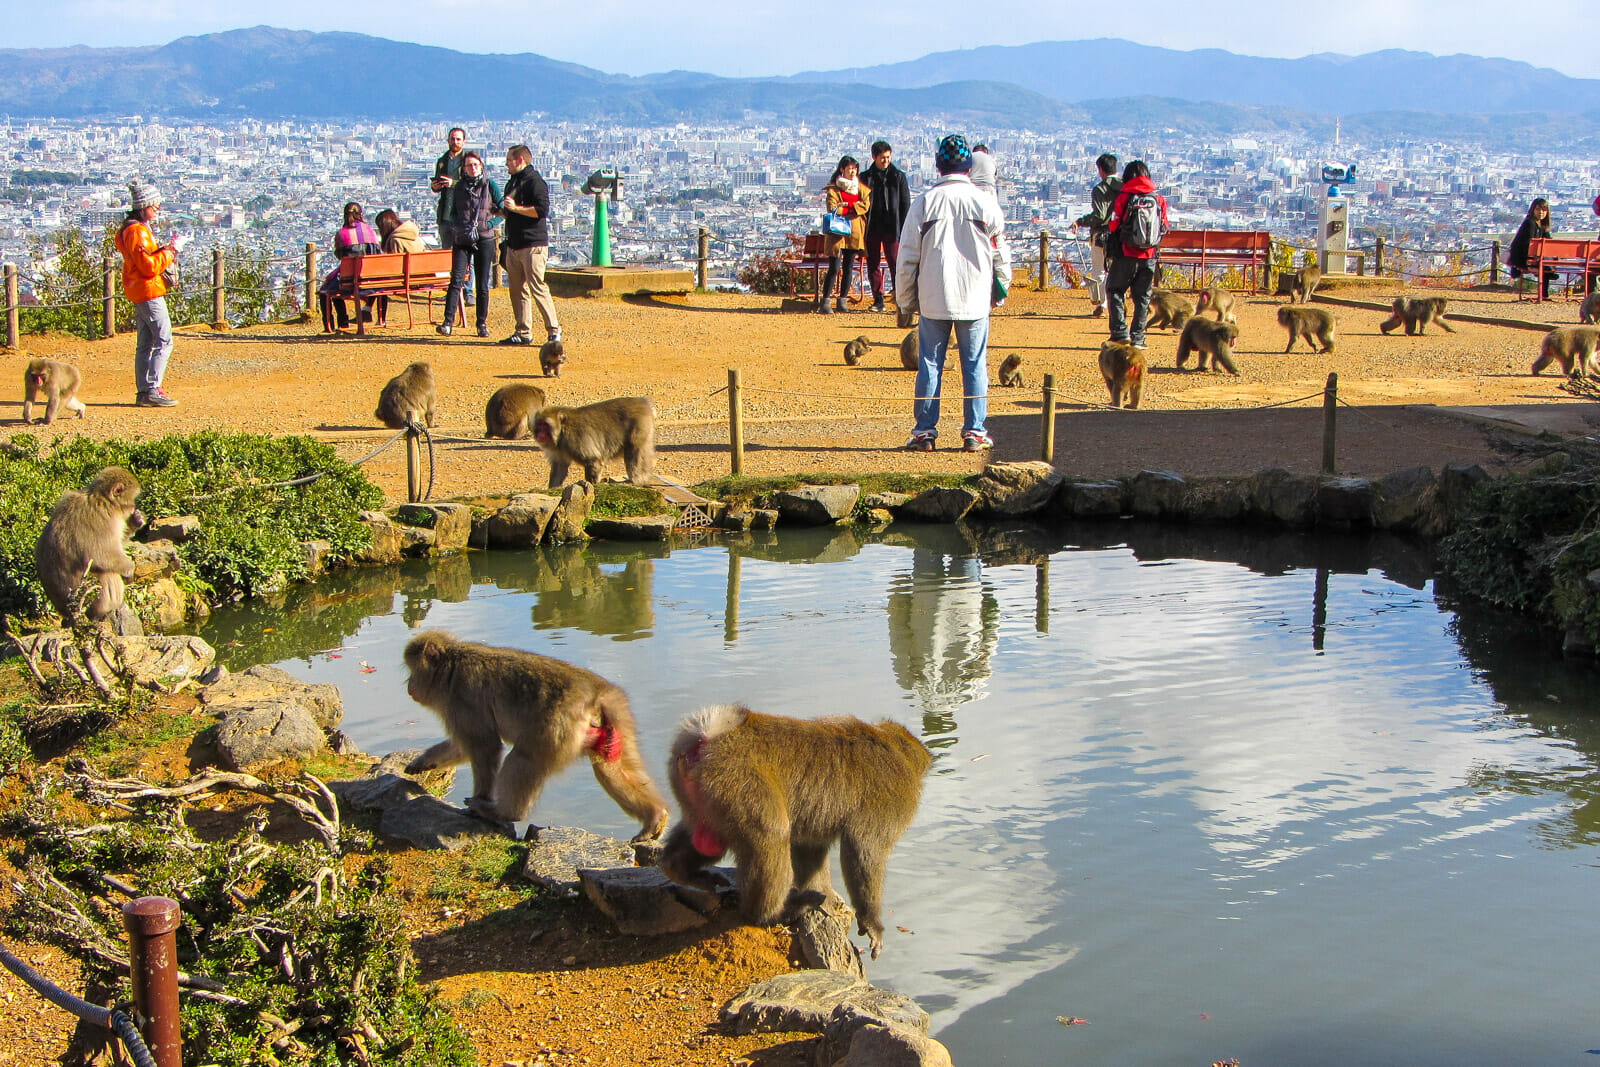 The Snow Monkey Sanctuary at the top of Arashiyama